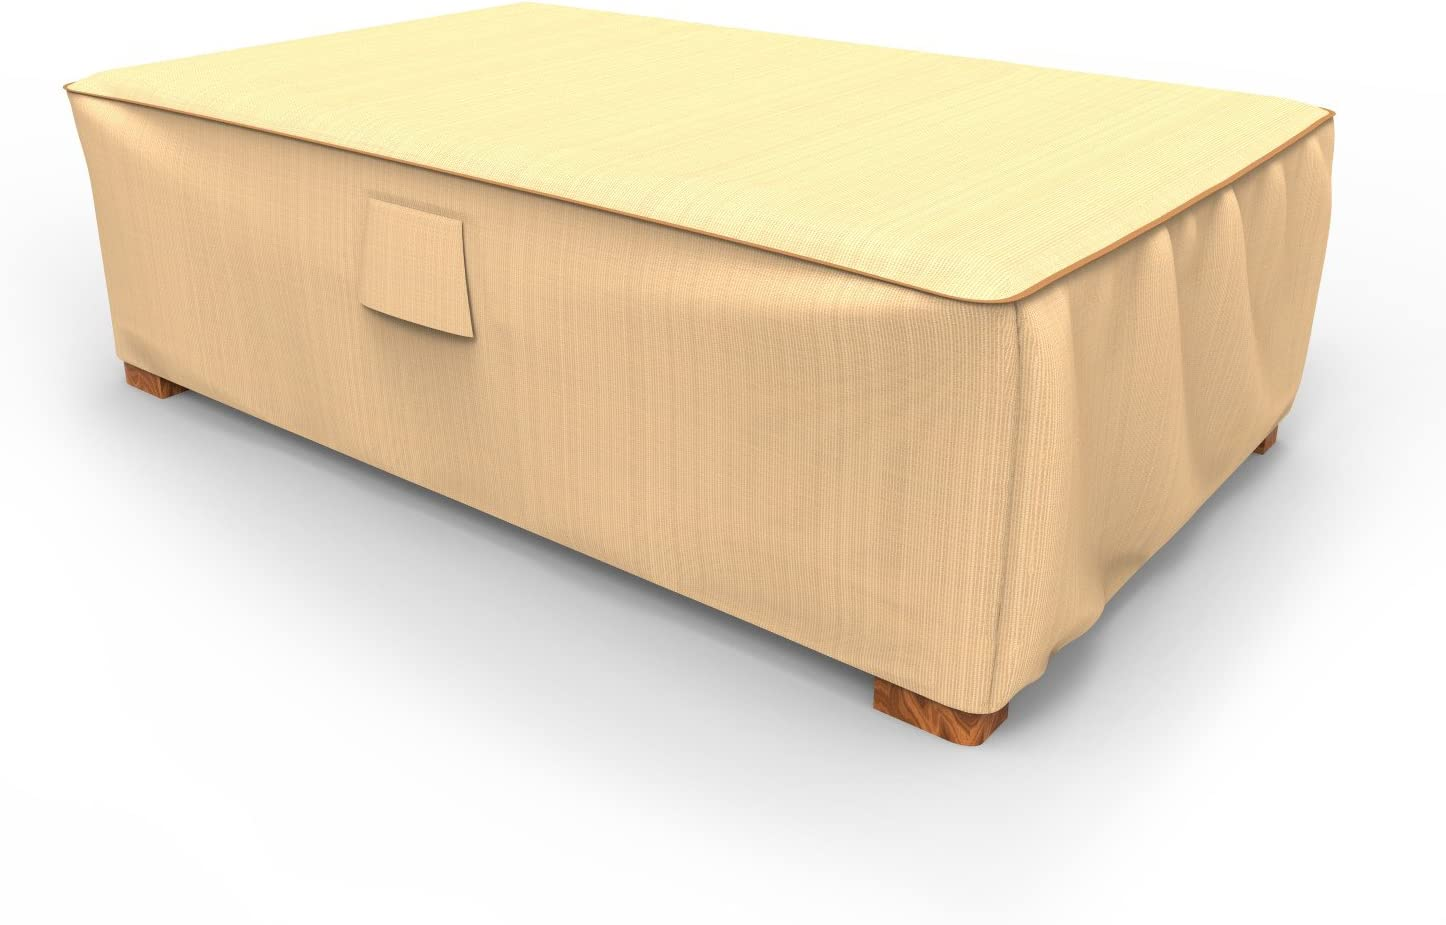 Tan Durable Large Budge P5A36TNNW1 Patio Ottoman Coffee Table Cover Waterproof